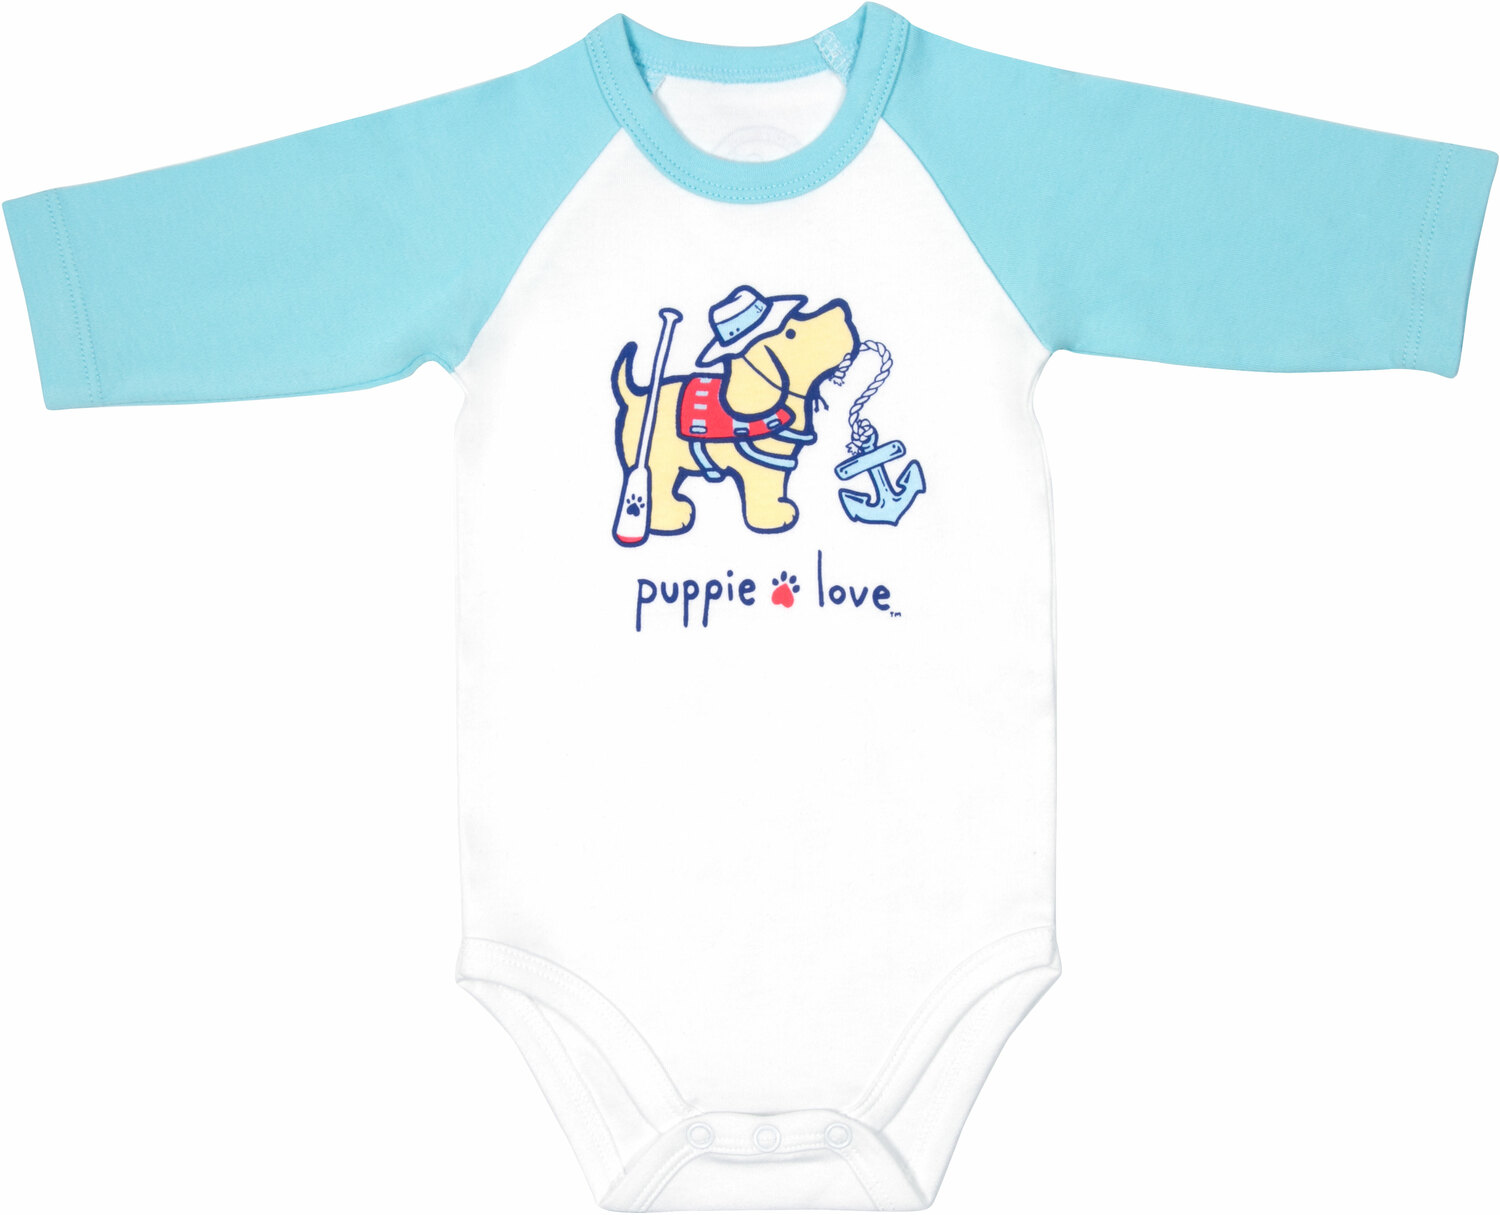 Lake by Puppie Love - Lake - 6-12 Months 3/4 Length Blue Sleeve Onesie